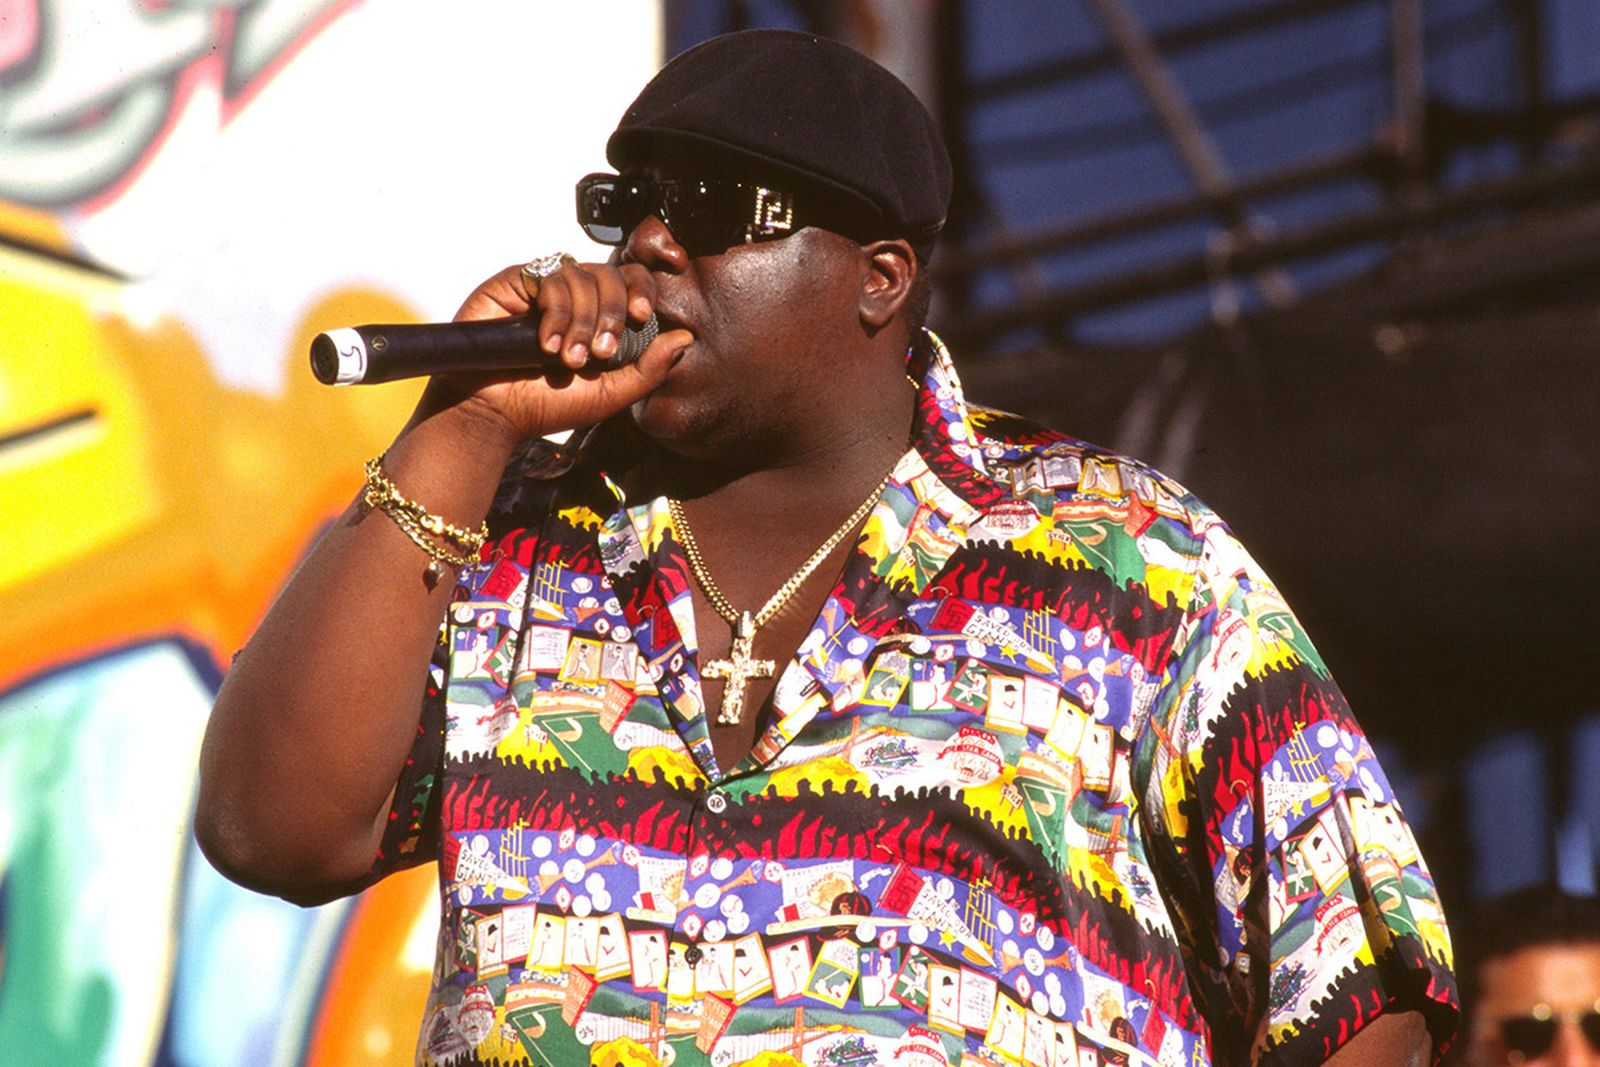 The Notorious B.I.G. performing